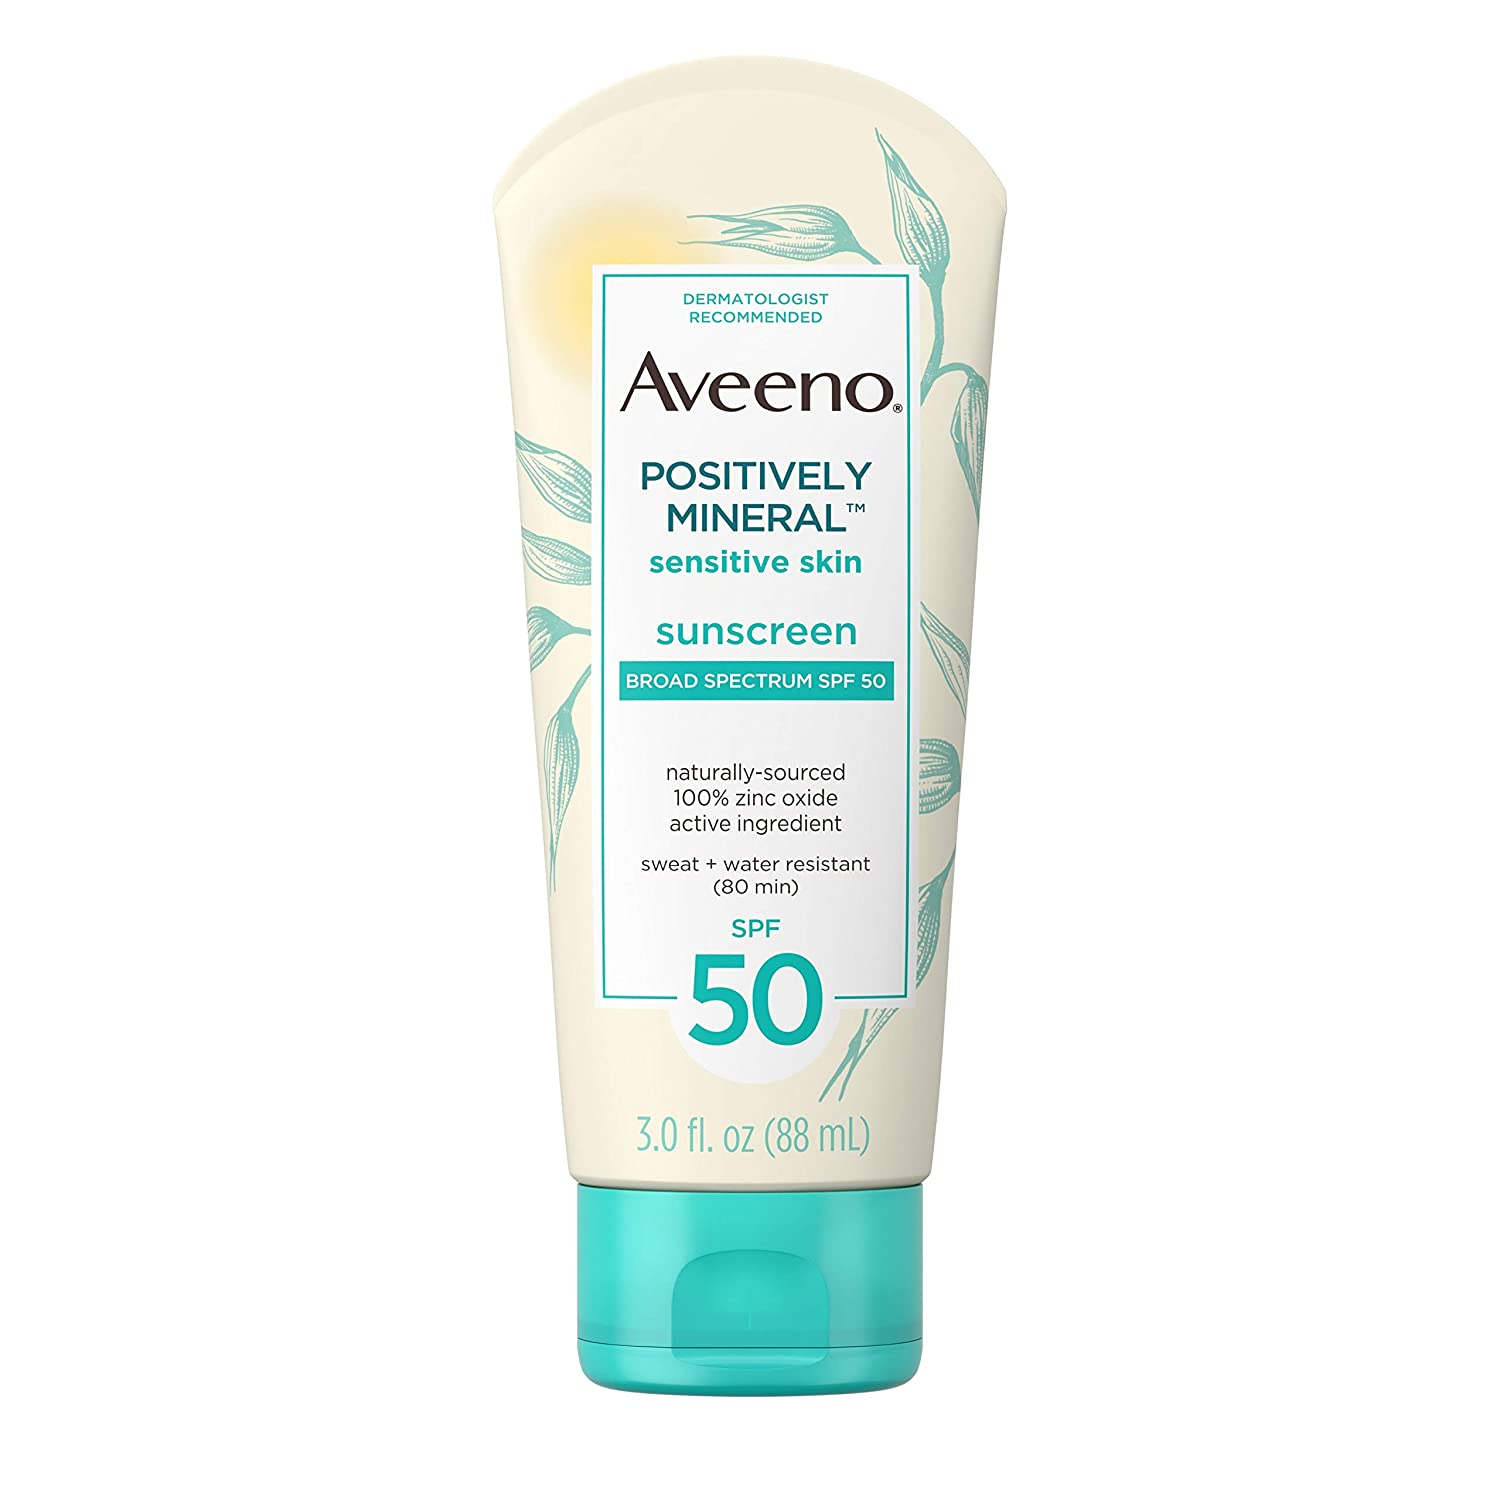 Aveeno Positively Mineral Sensitive Skin Daily Sunscreen; best sunscreen for tattoos